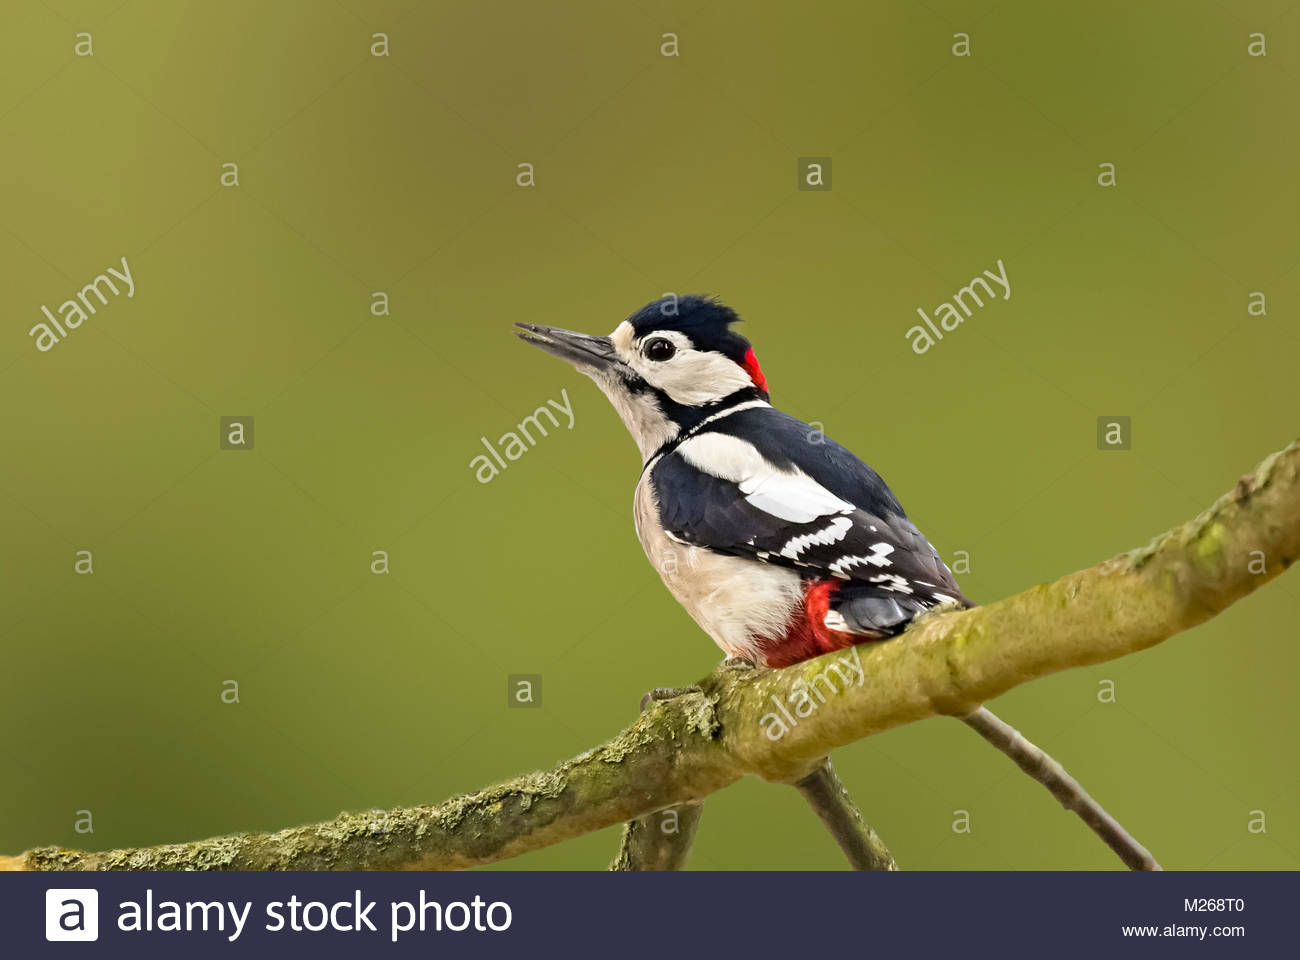 Male Great Spotted Woodpecker (Dendrocopos major) perched on a tree branch in Autumn in Arundel, West Sussex, England, - Stock Image